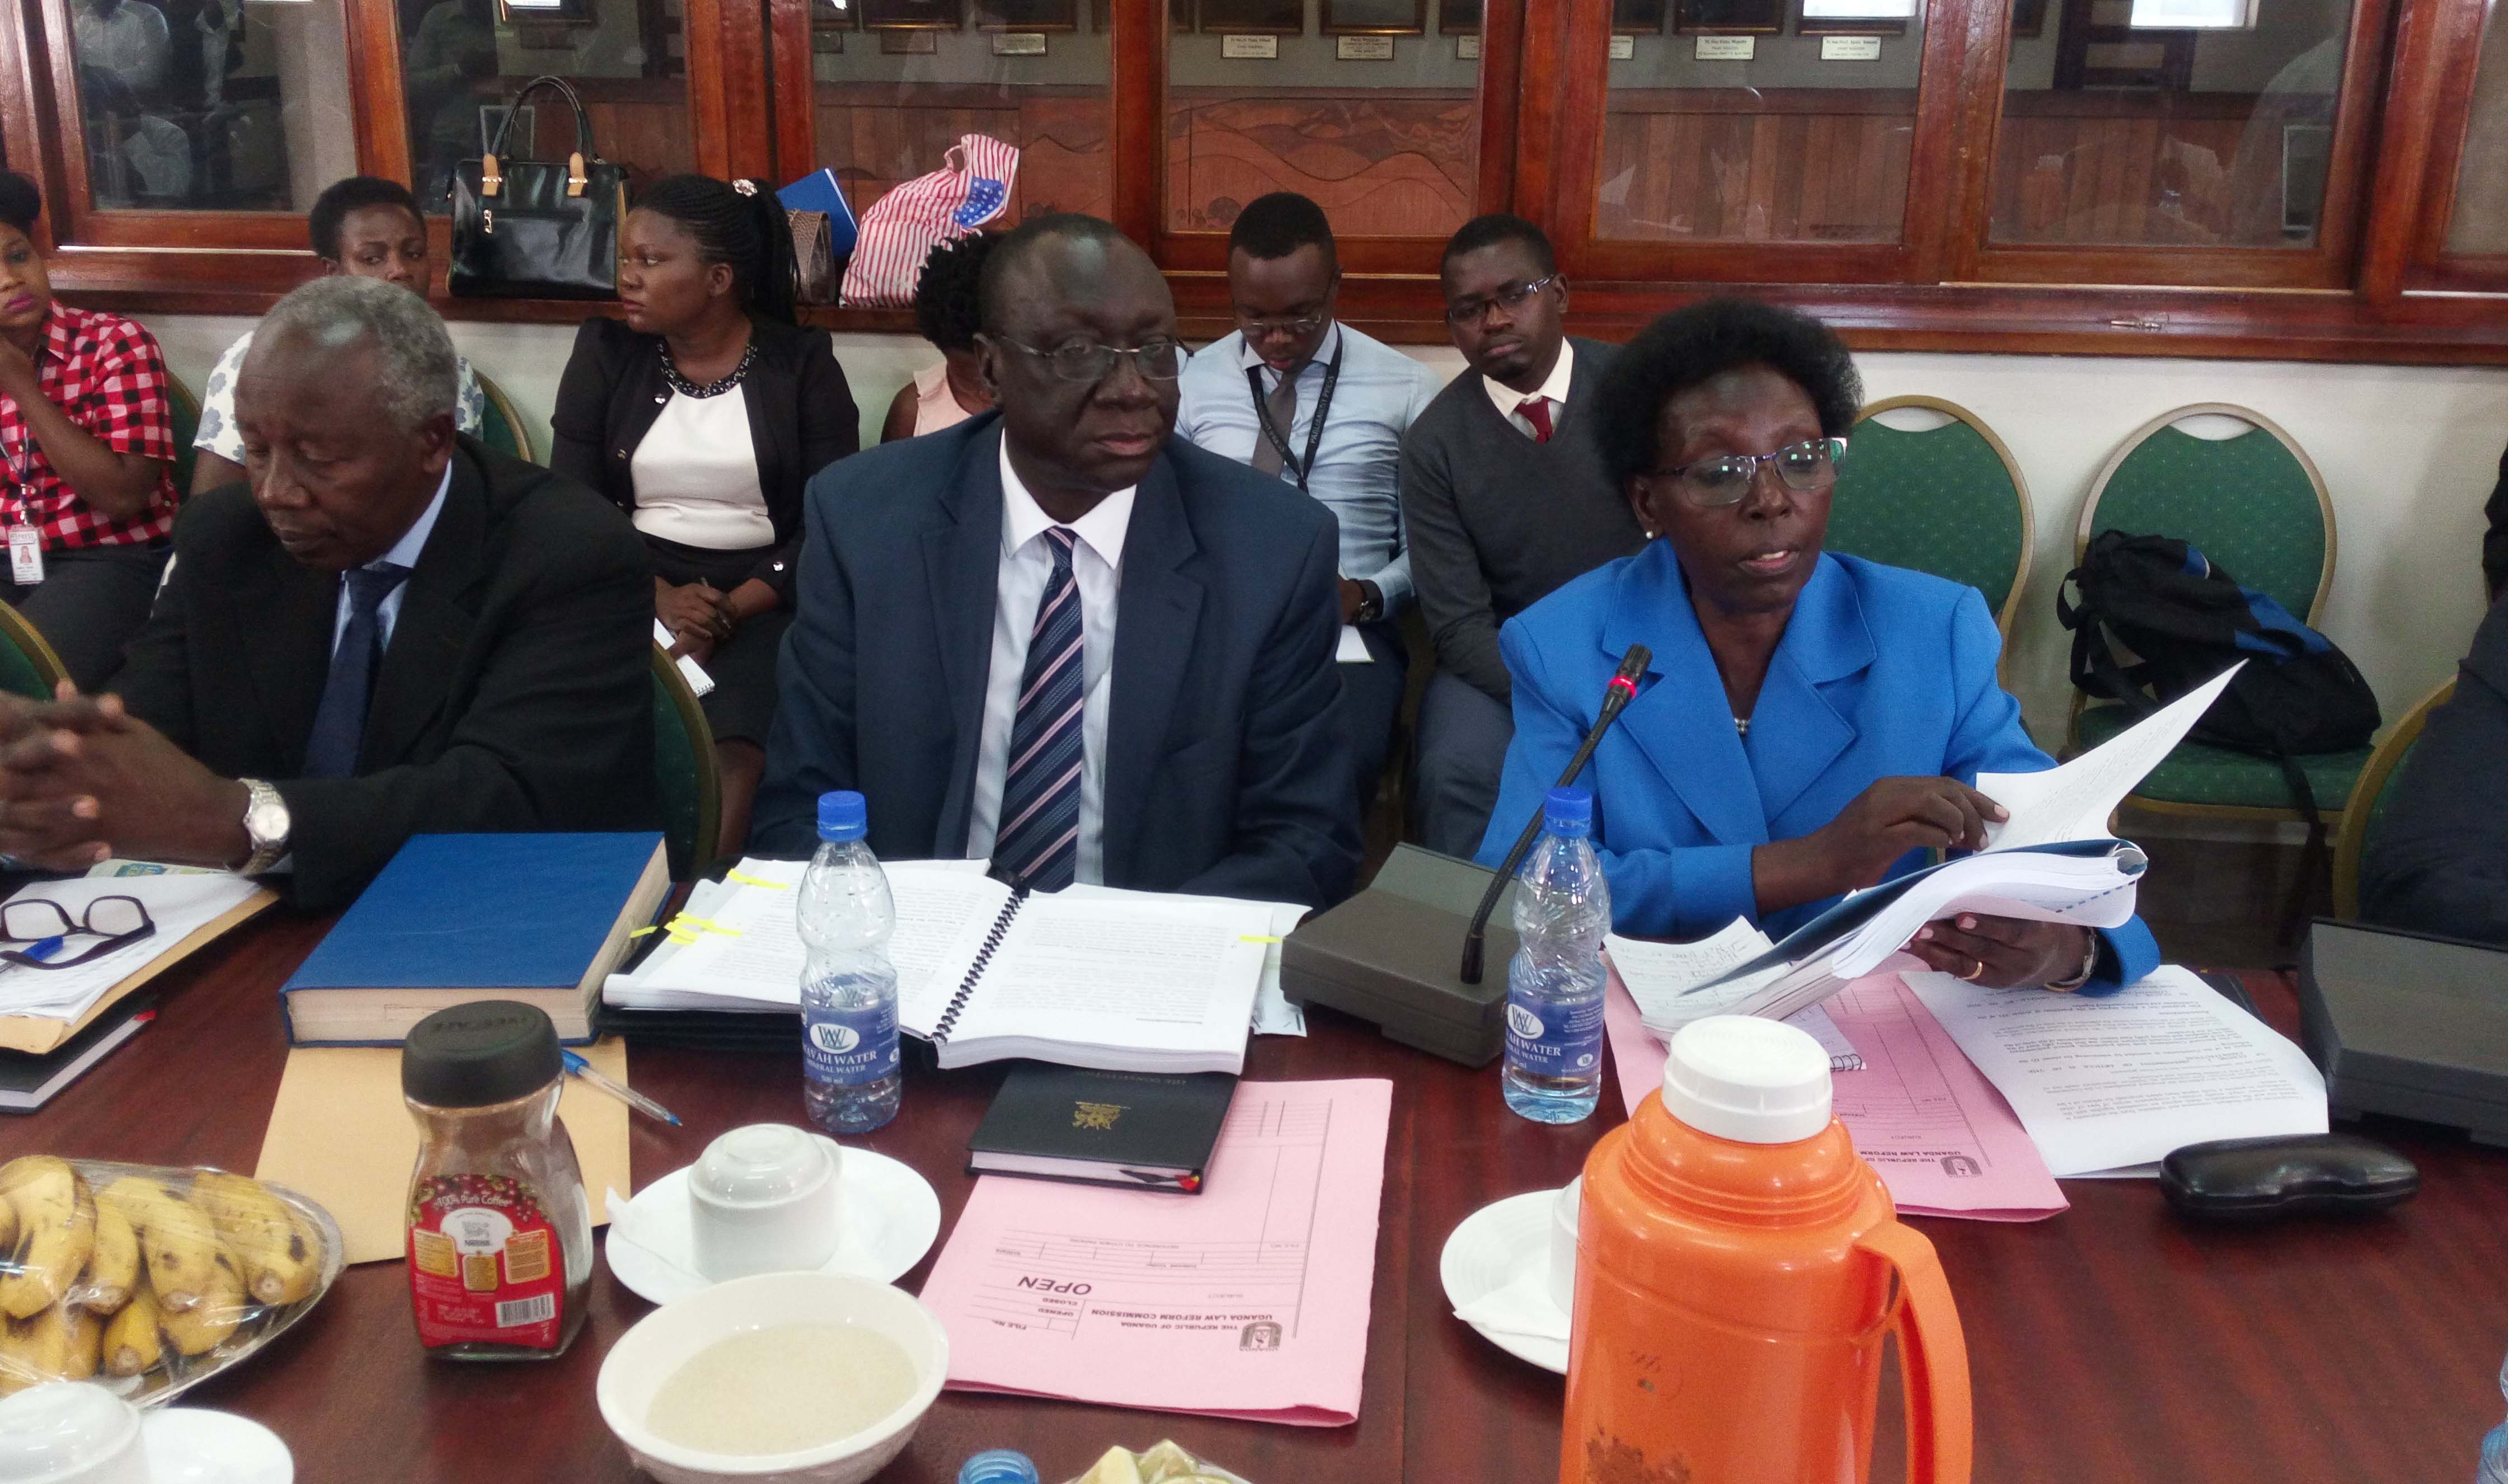 Vastina Rukimirana (right) reads a doucument before the committee, center is Omara Abong secretary to the commission. Please change name in script to RUKIMIRANA